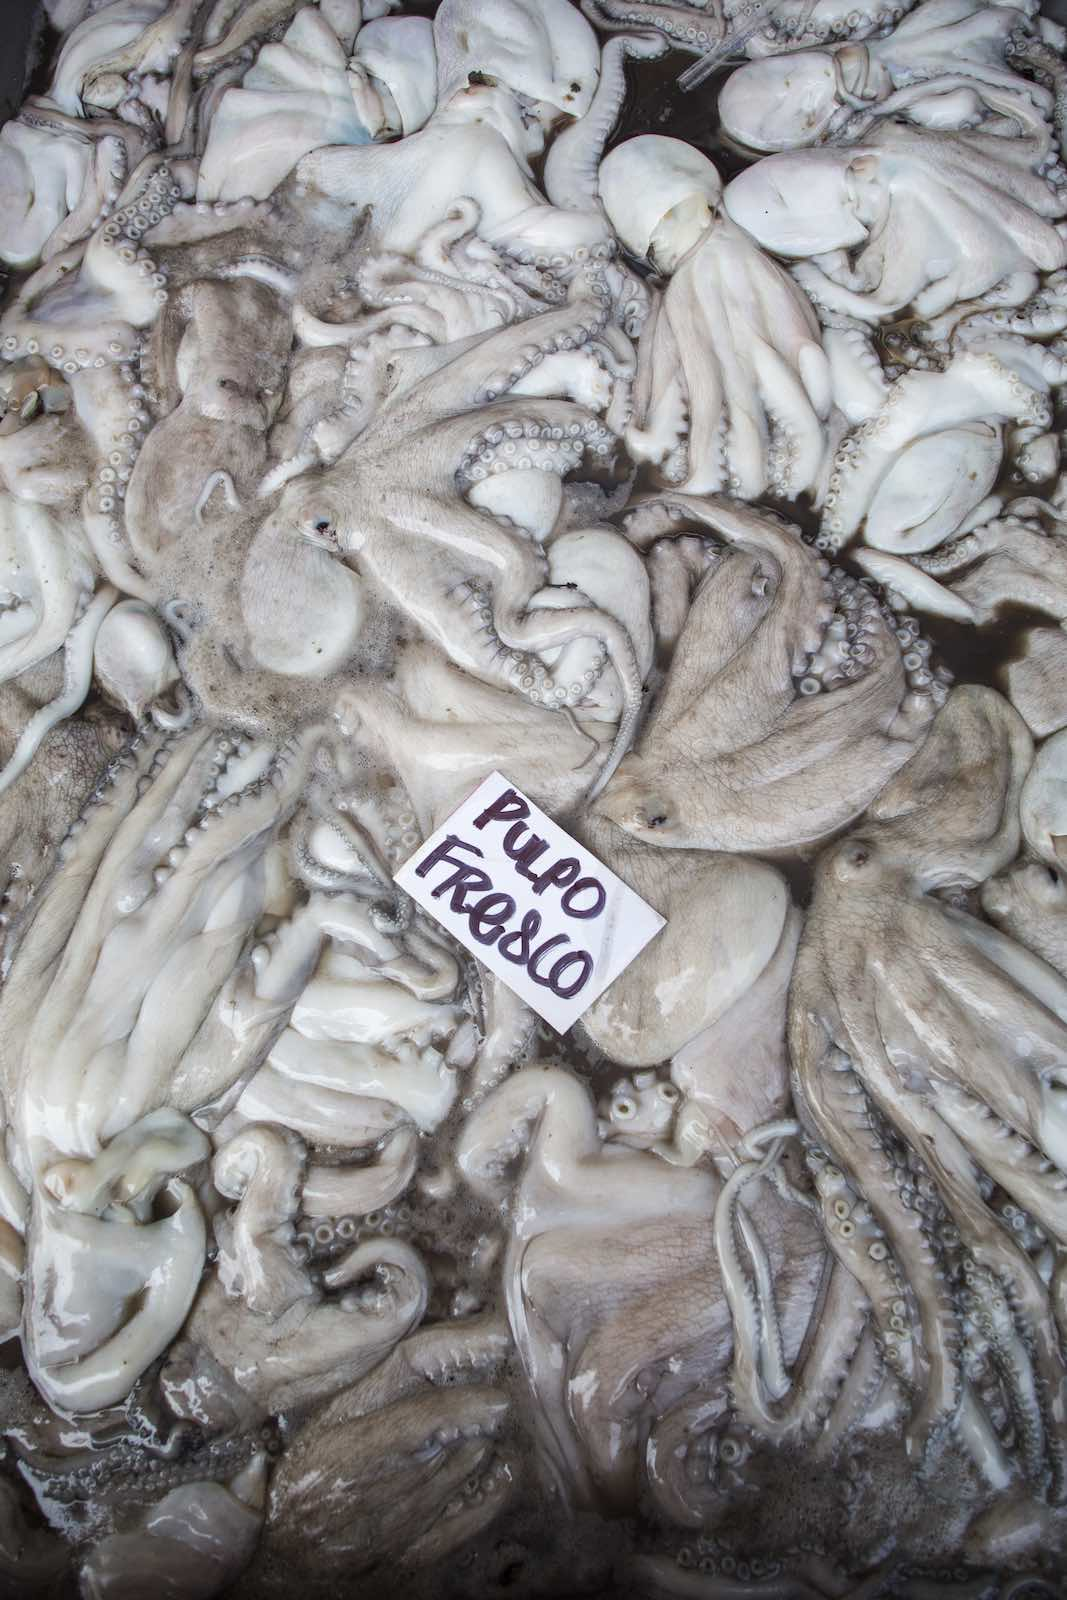 Jody Horton Photography - Fresh caught octopi in the Mexico food market.